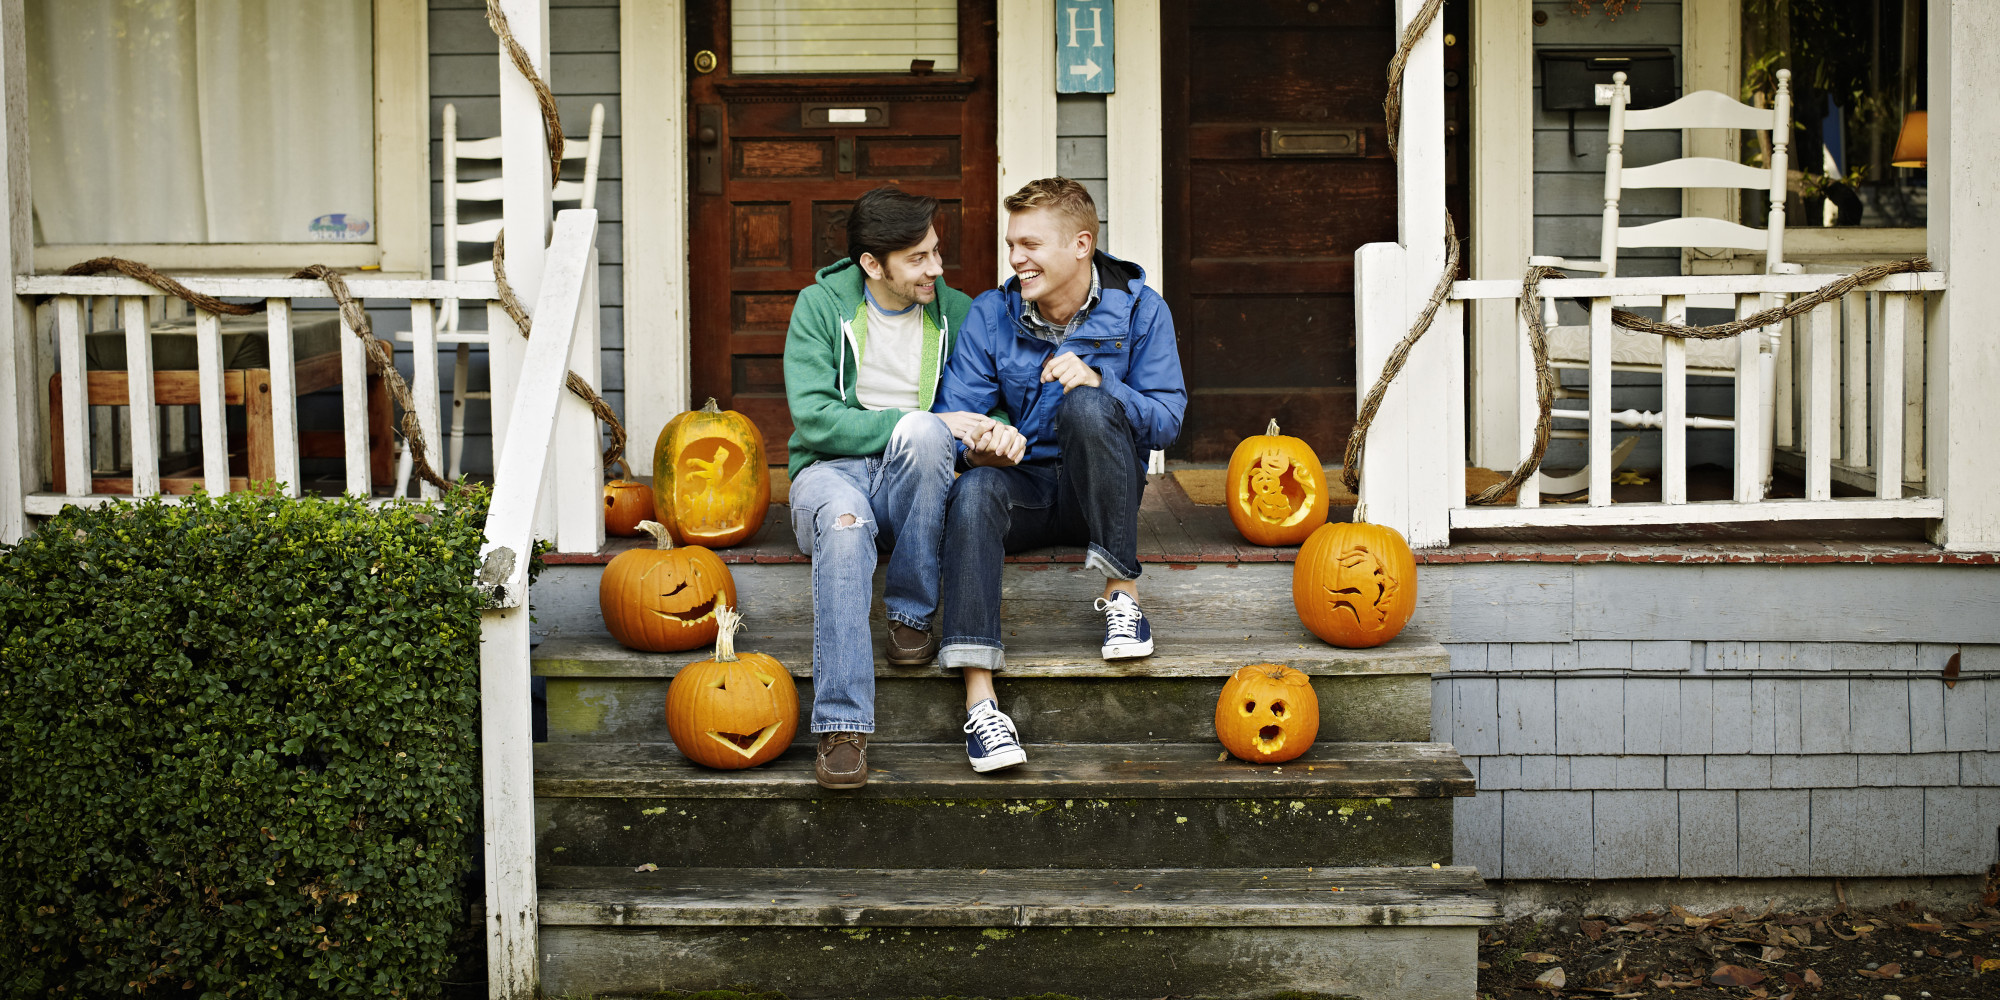 12 Of The Best Halloween Costumes For Gay Male Couples | HuffPost